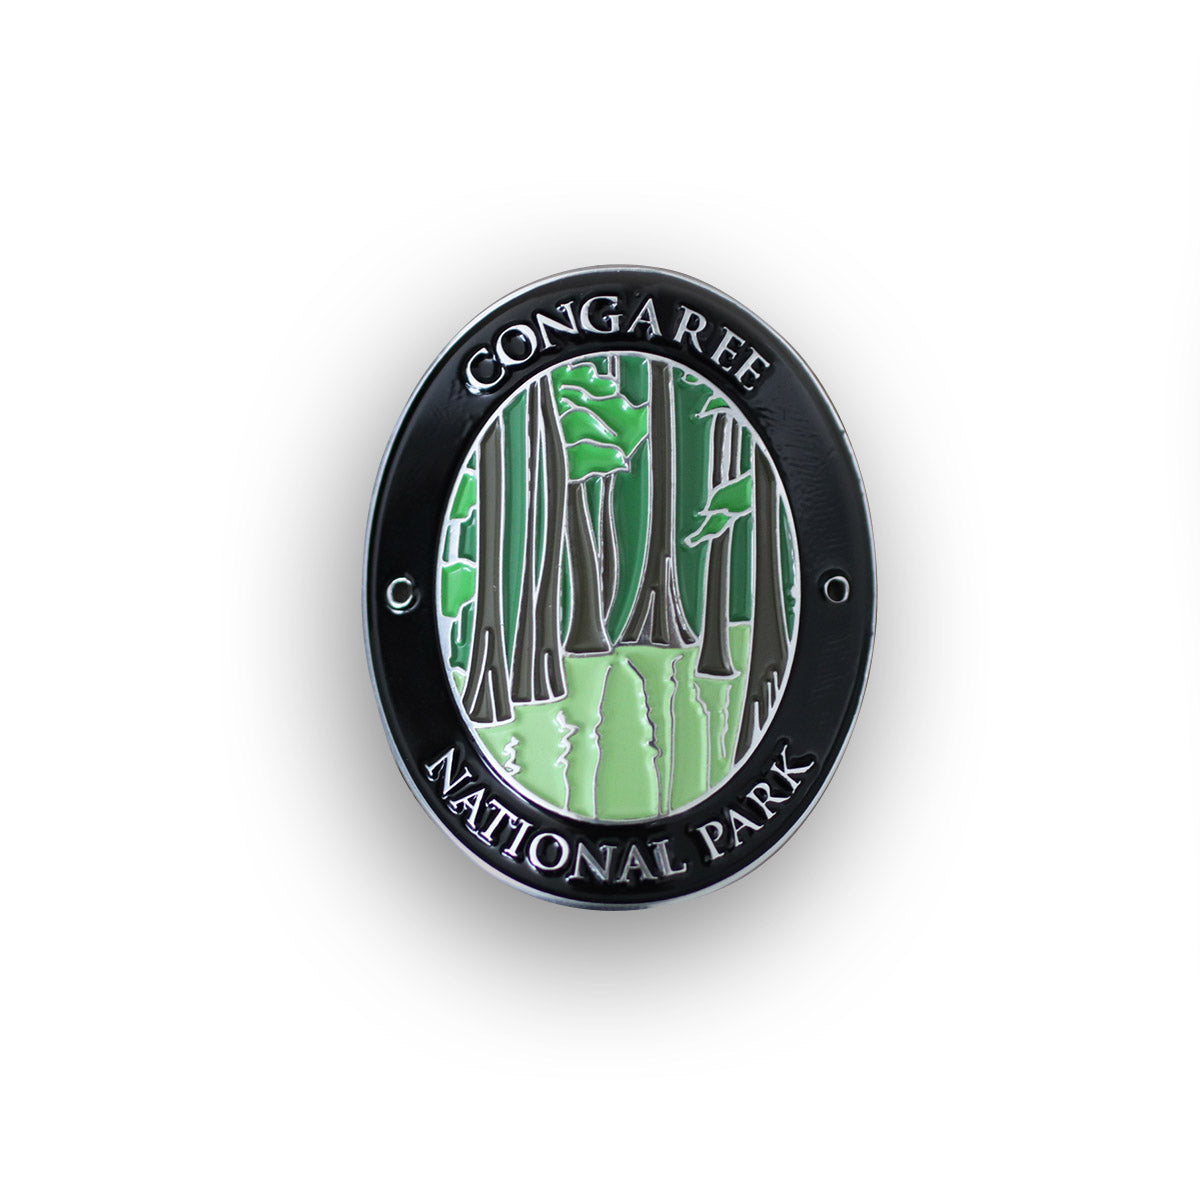 Congaree National Park Walking Stick Medallion